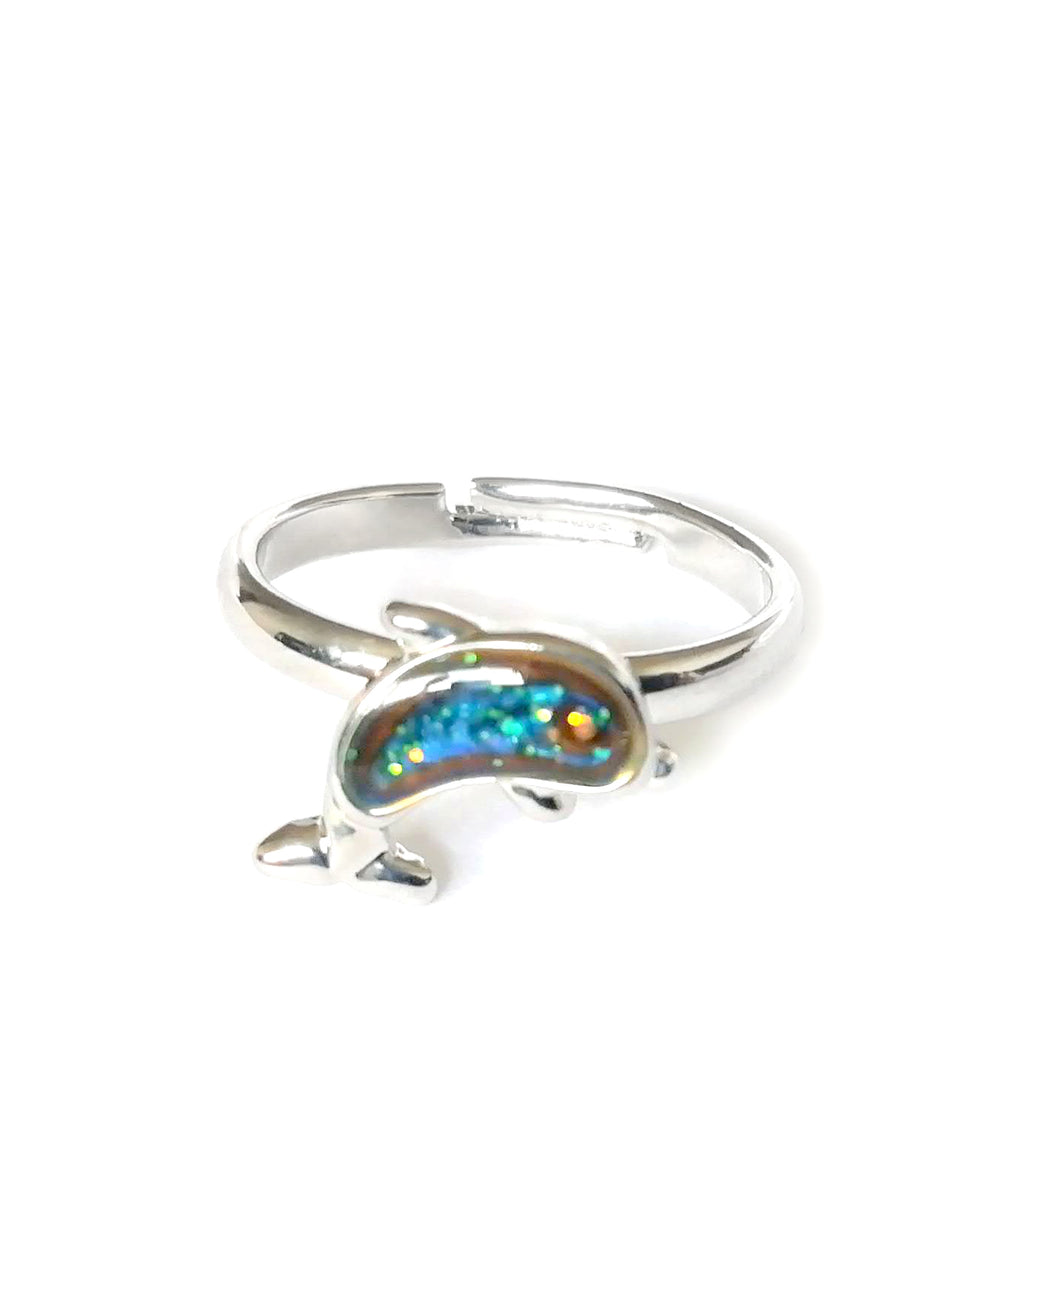 a dolphin mood ring in a child size